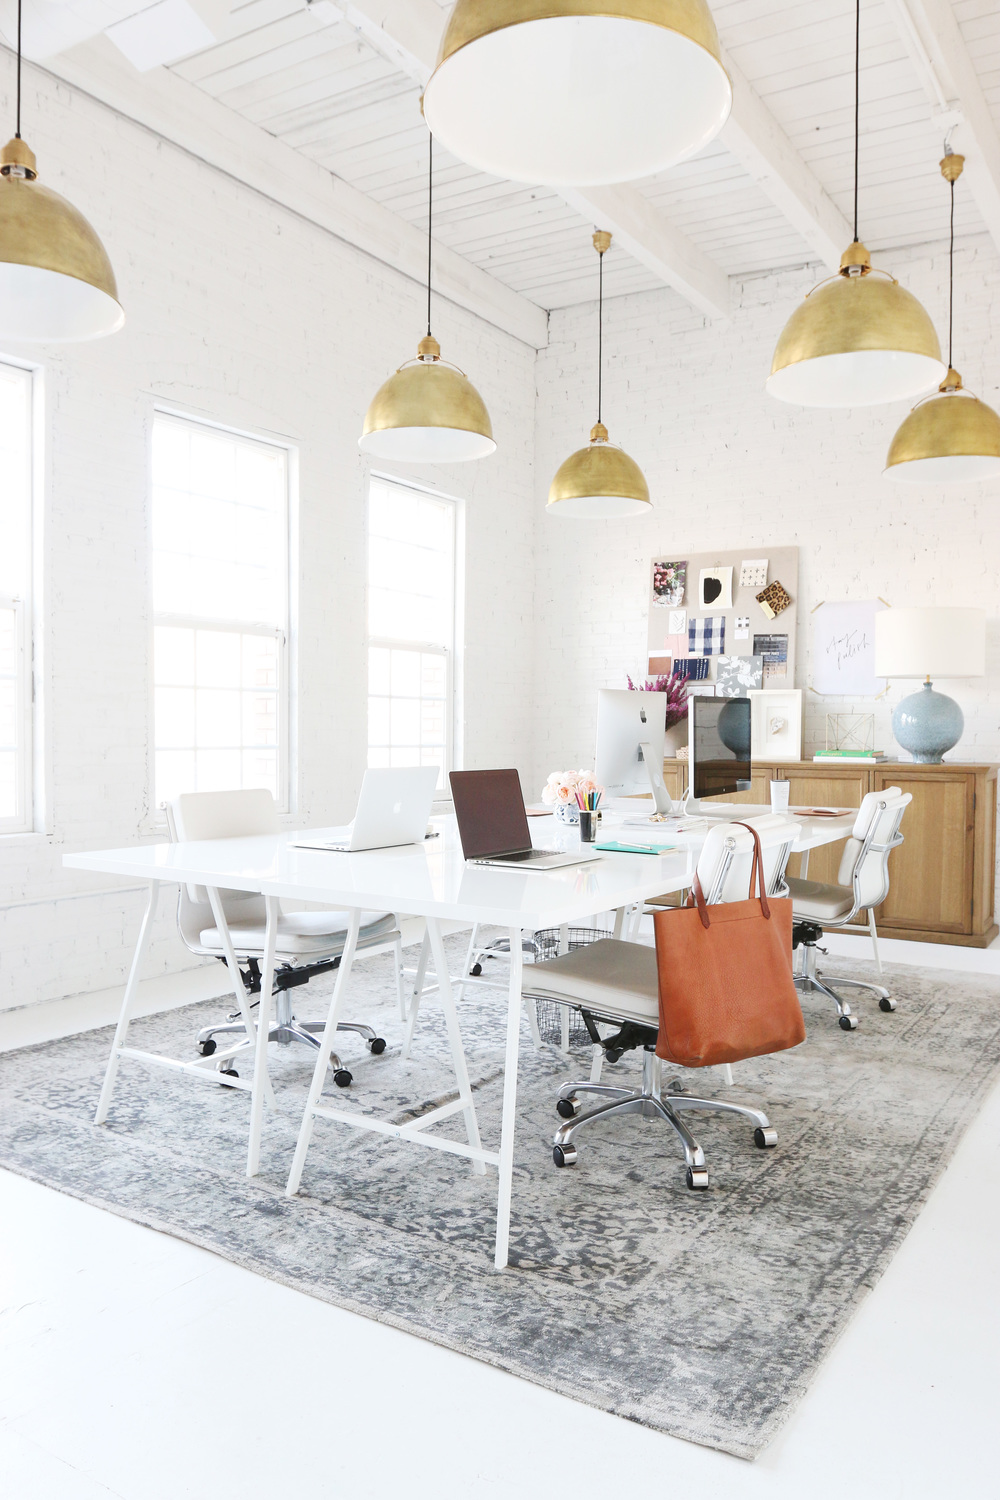 Studio office design with white work table